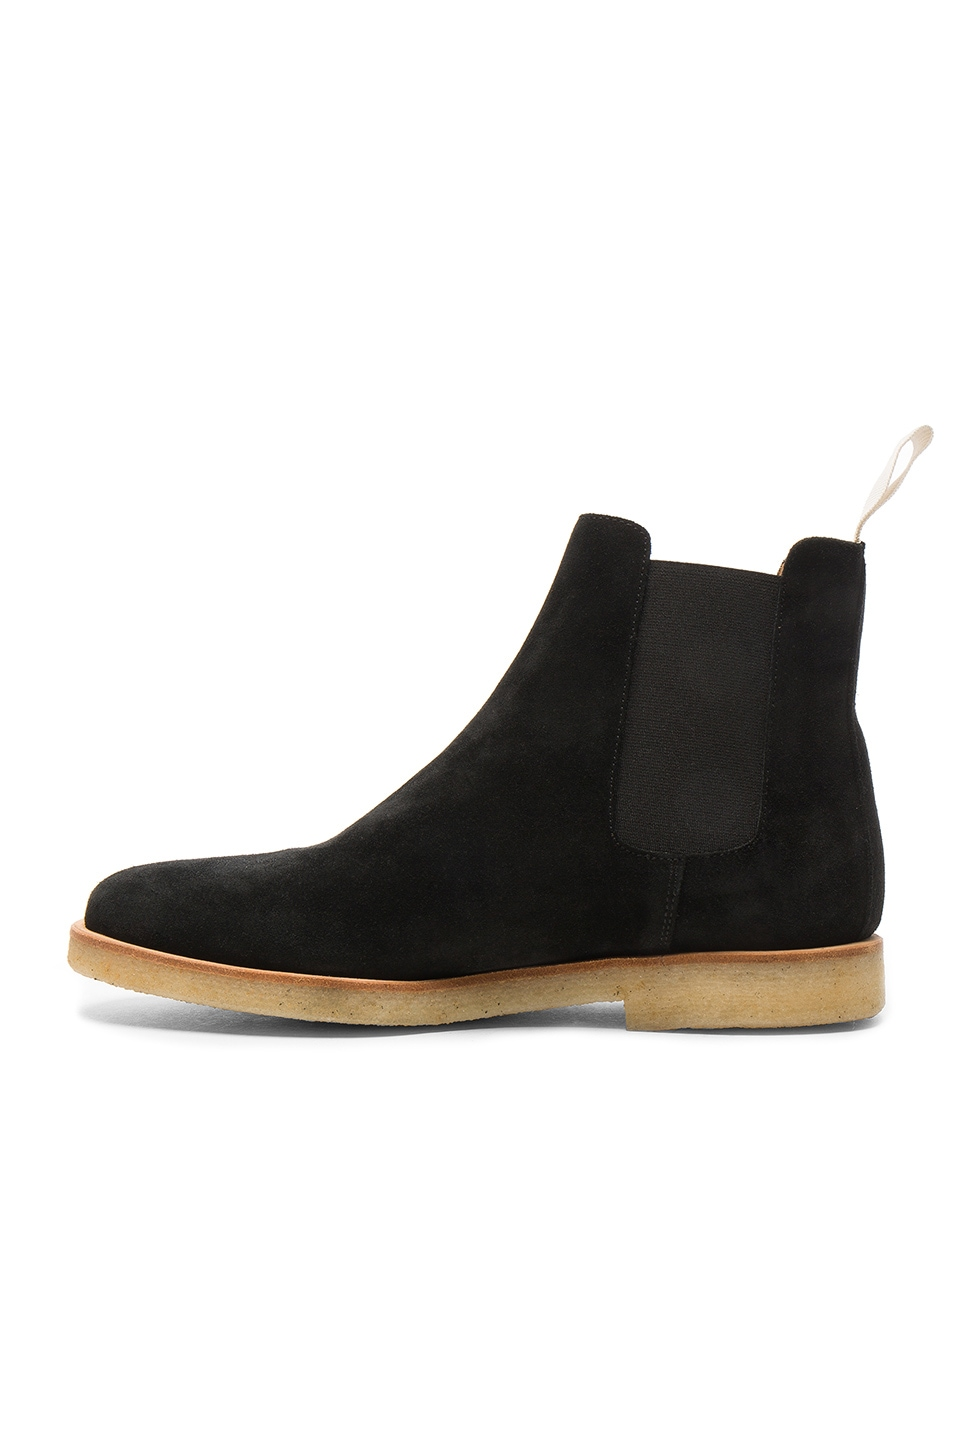 Image 5 of Common Projects Suede Chelsea Boots in Black